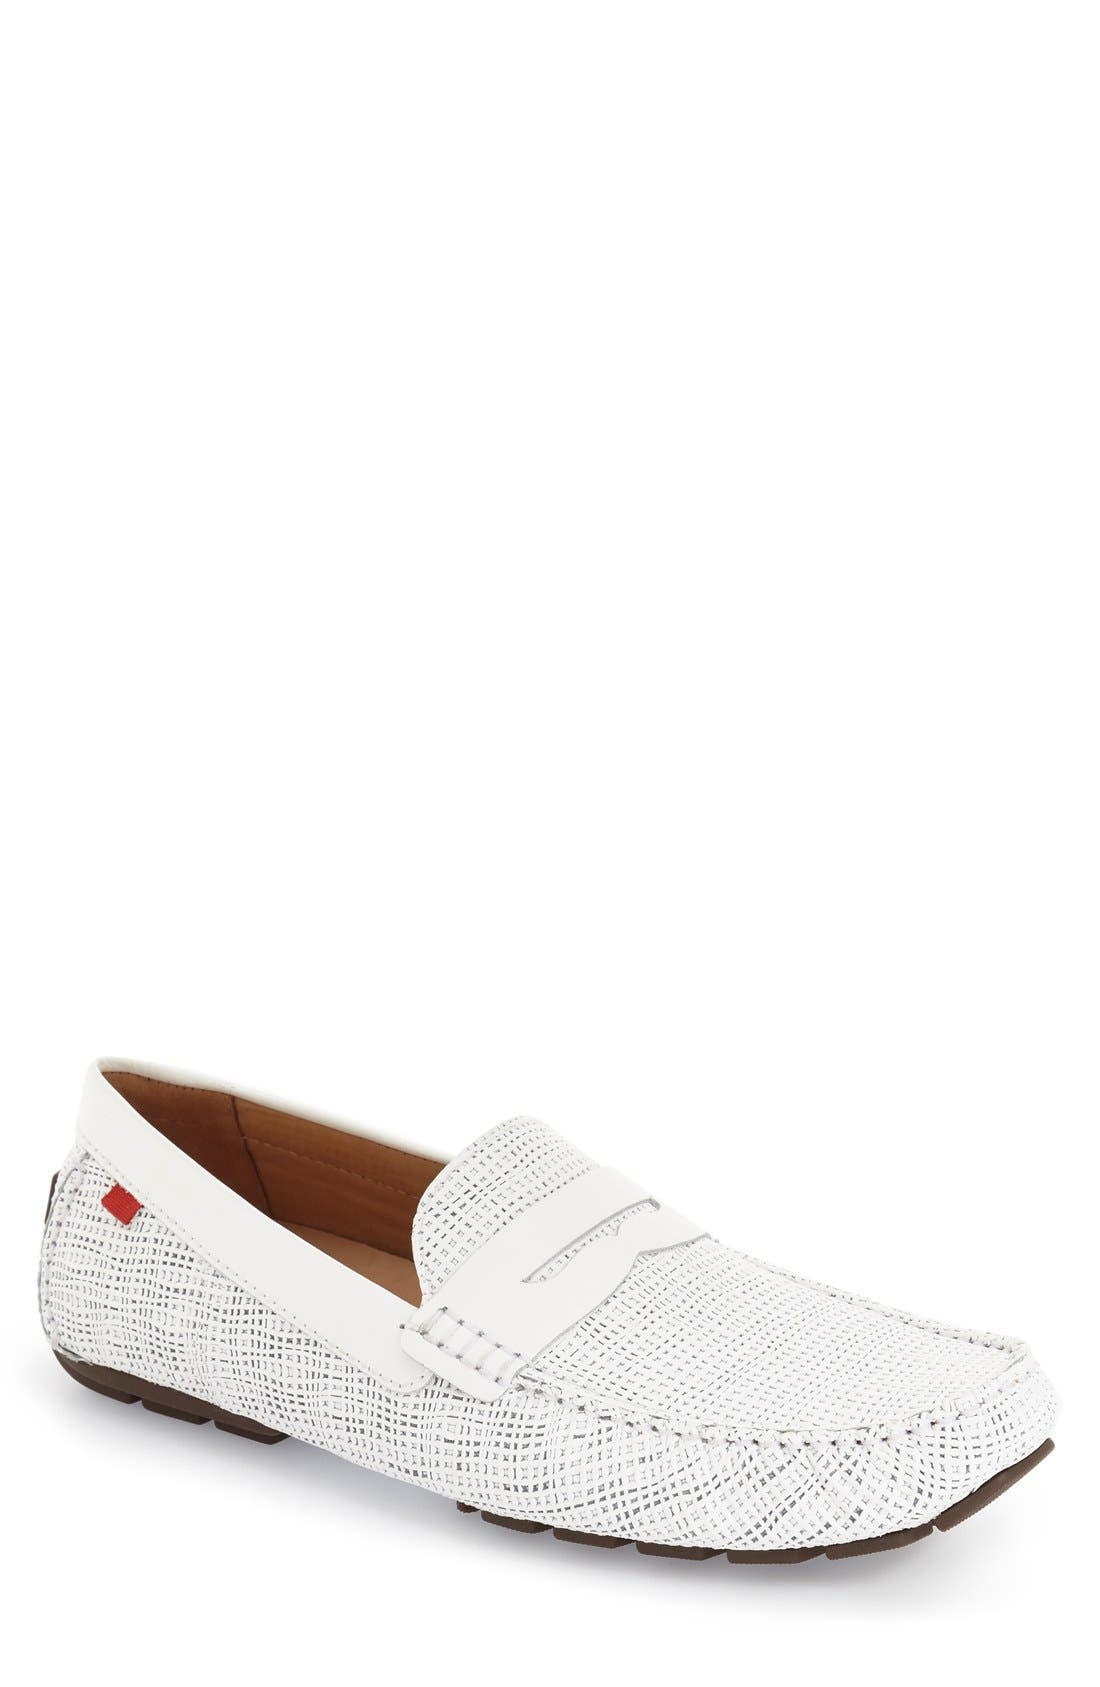 MARC JOSEPH NEW YORK 'Union Street' Penny Loafer